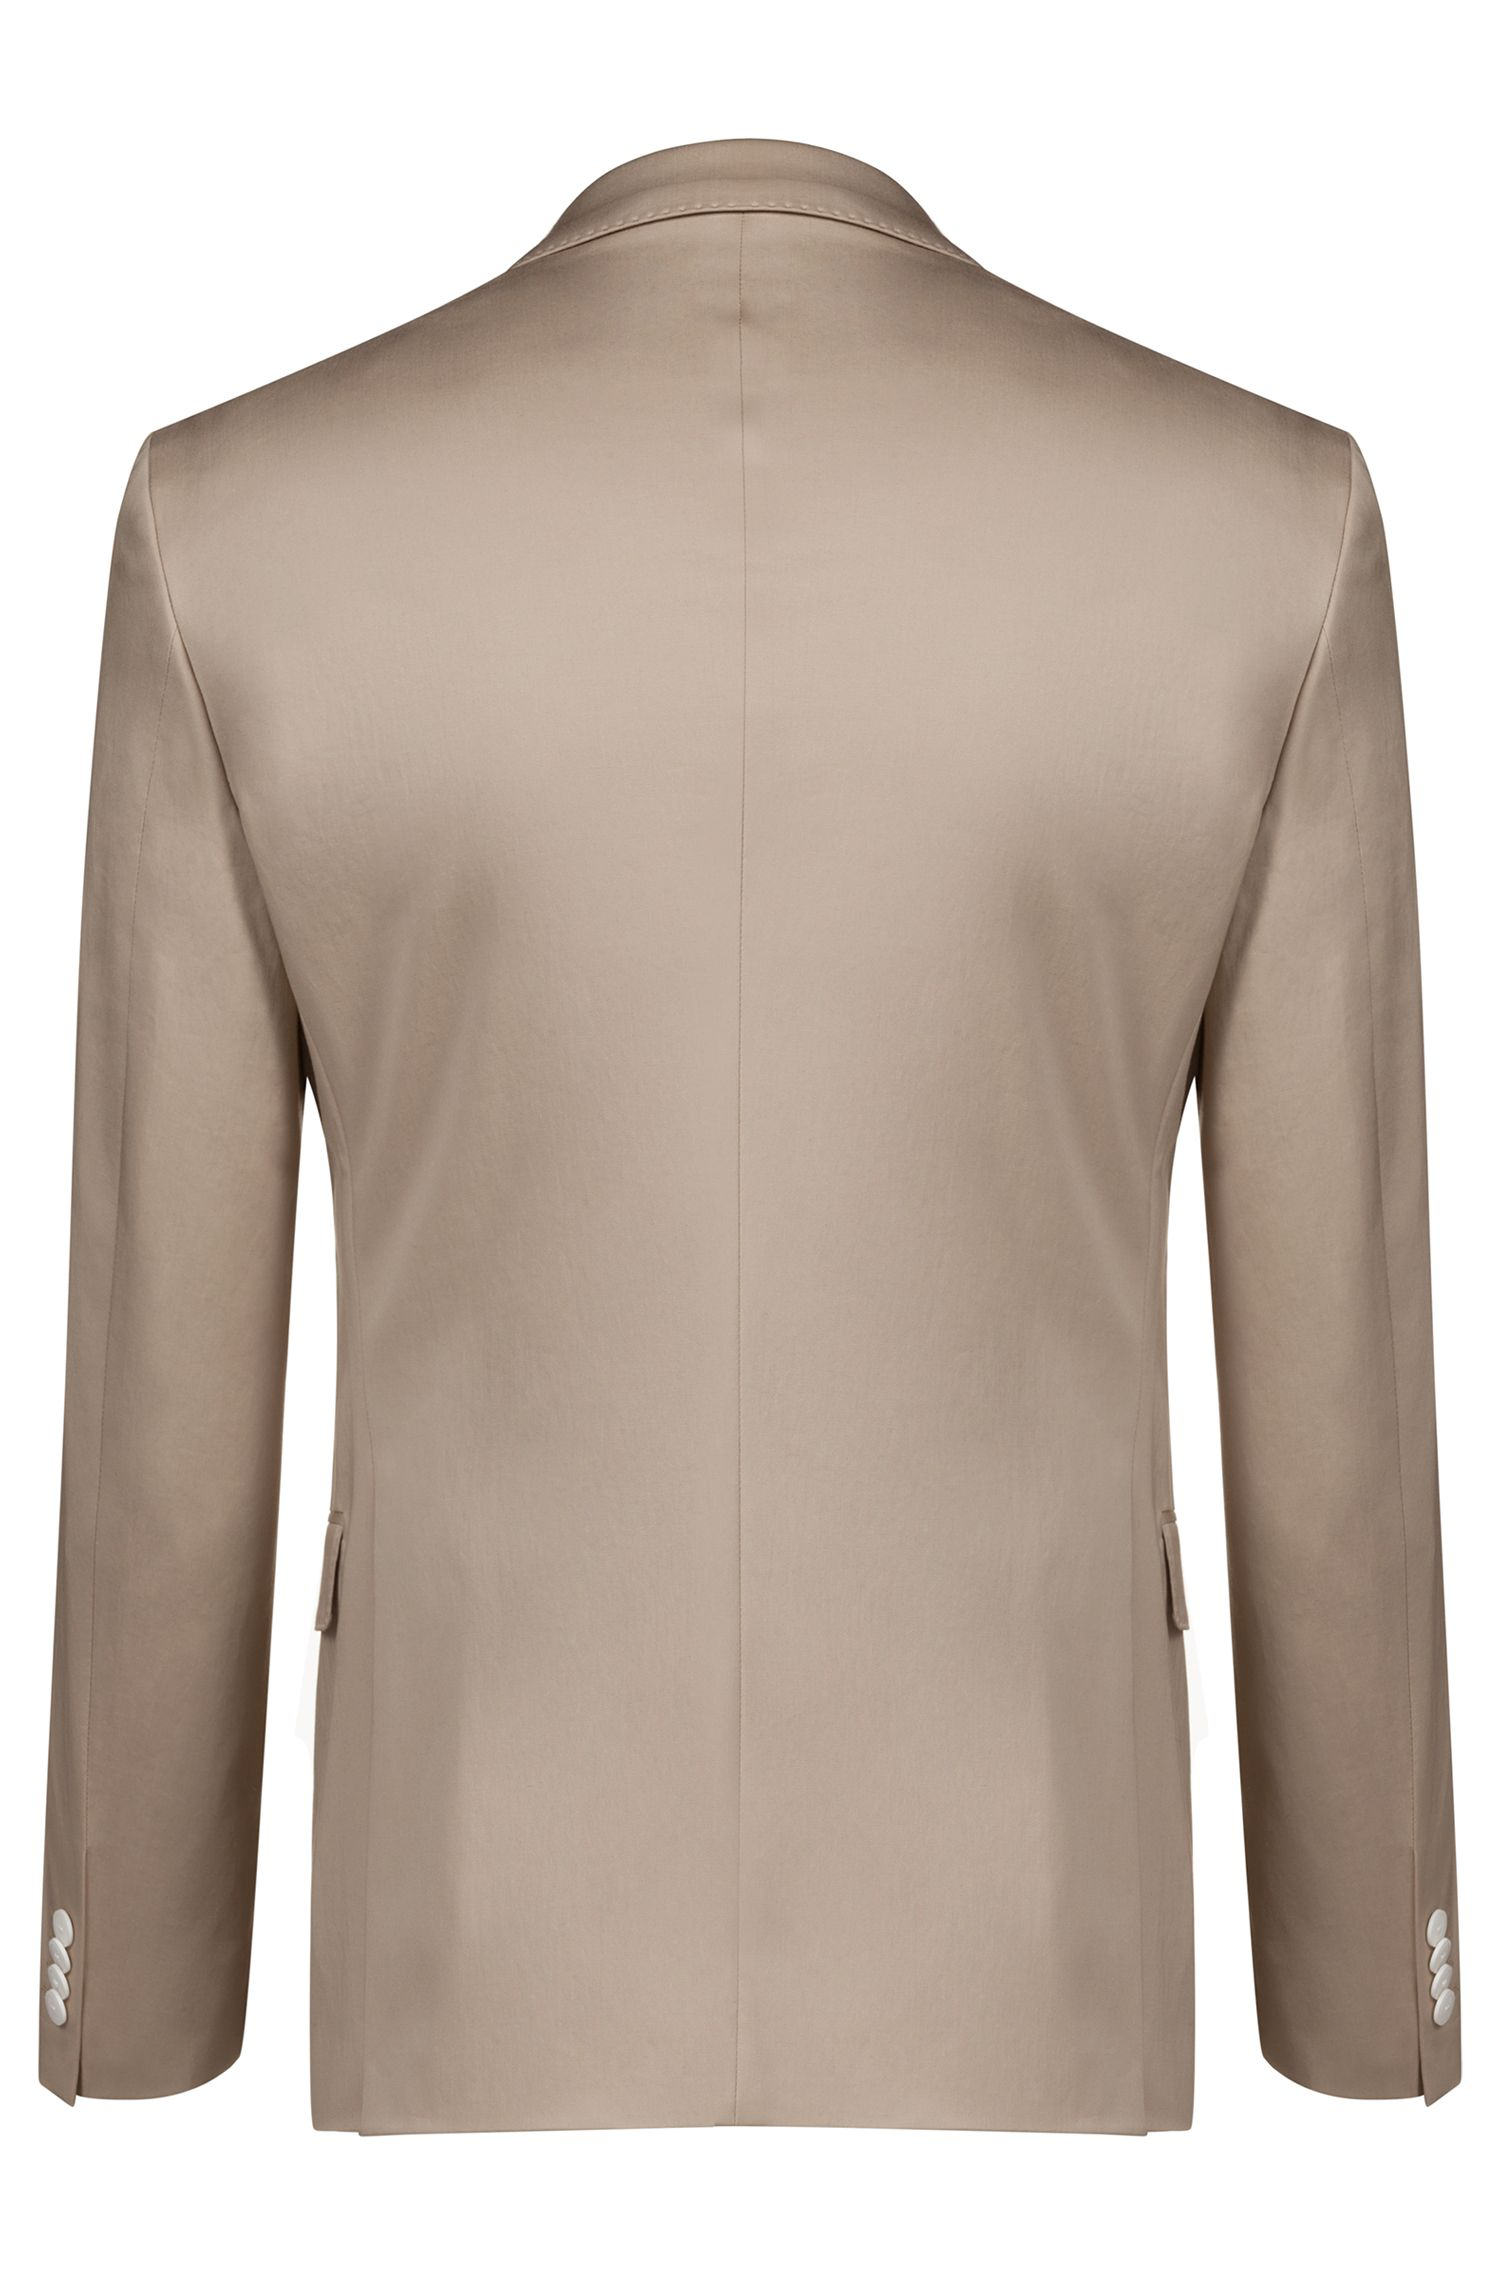 Costume Extra Slim Fit en coton stretch à la finition satinée, Beige